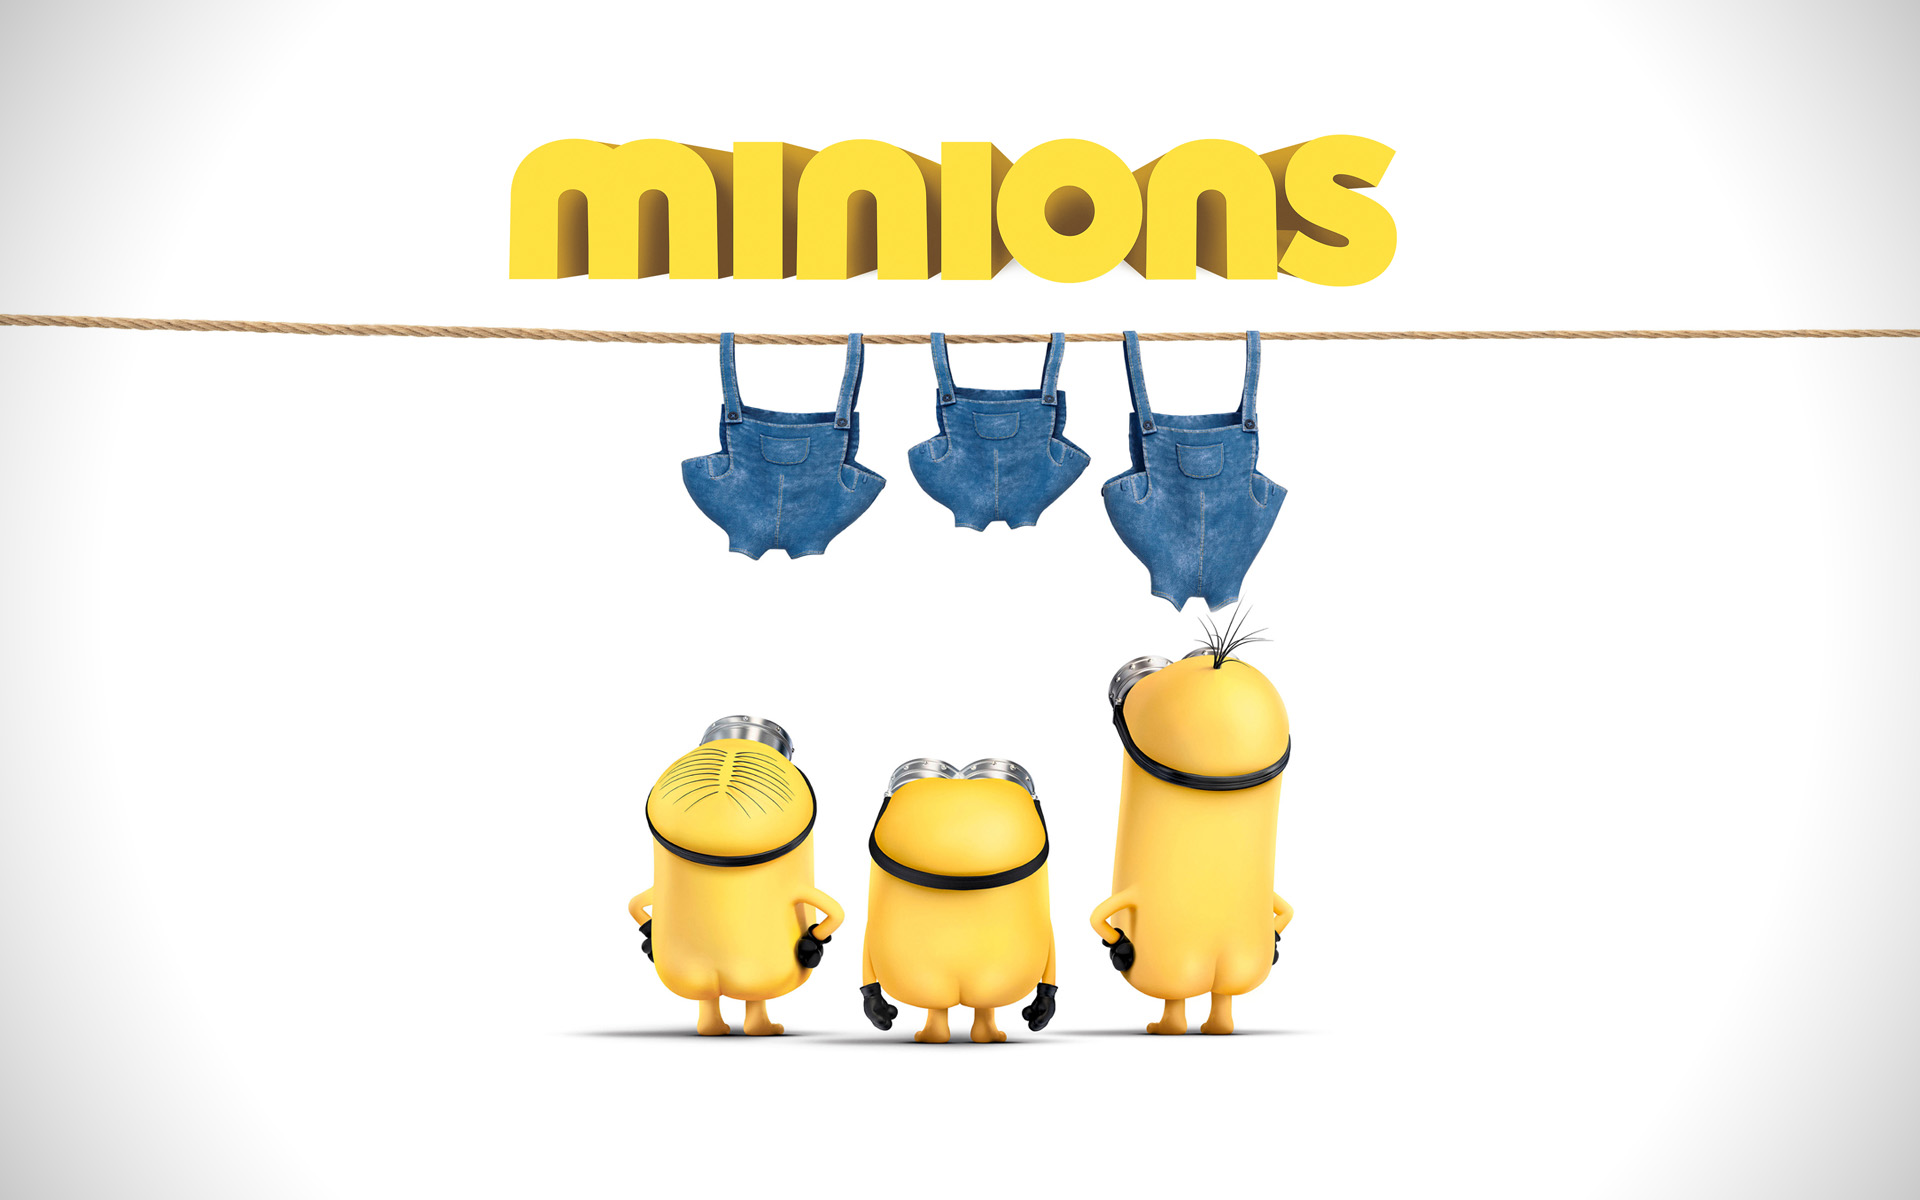 Minion Film Fond Ecran 10 000 Fonds D Ecran Hd Gratuits Et De Qualite Wallpapers Hd